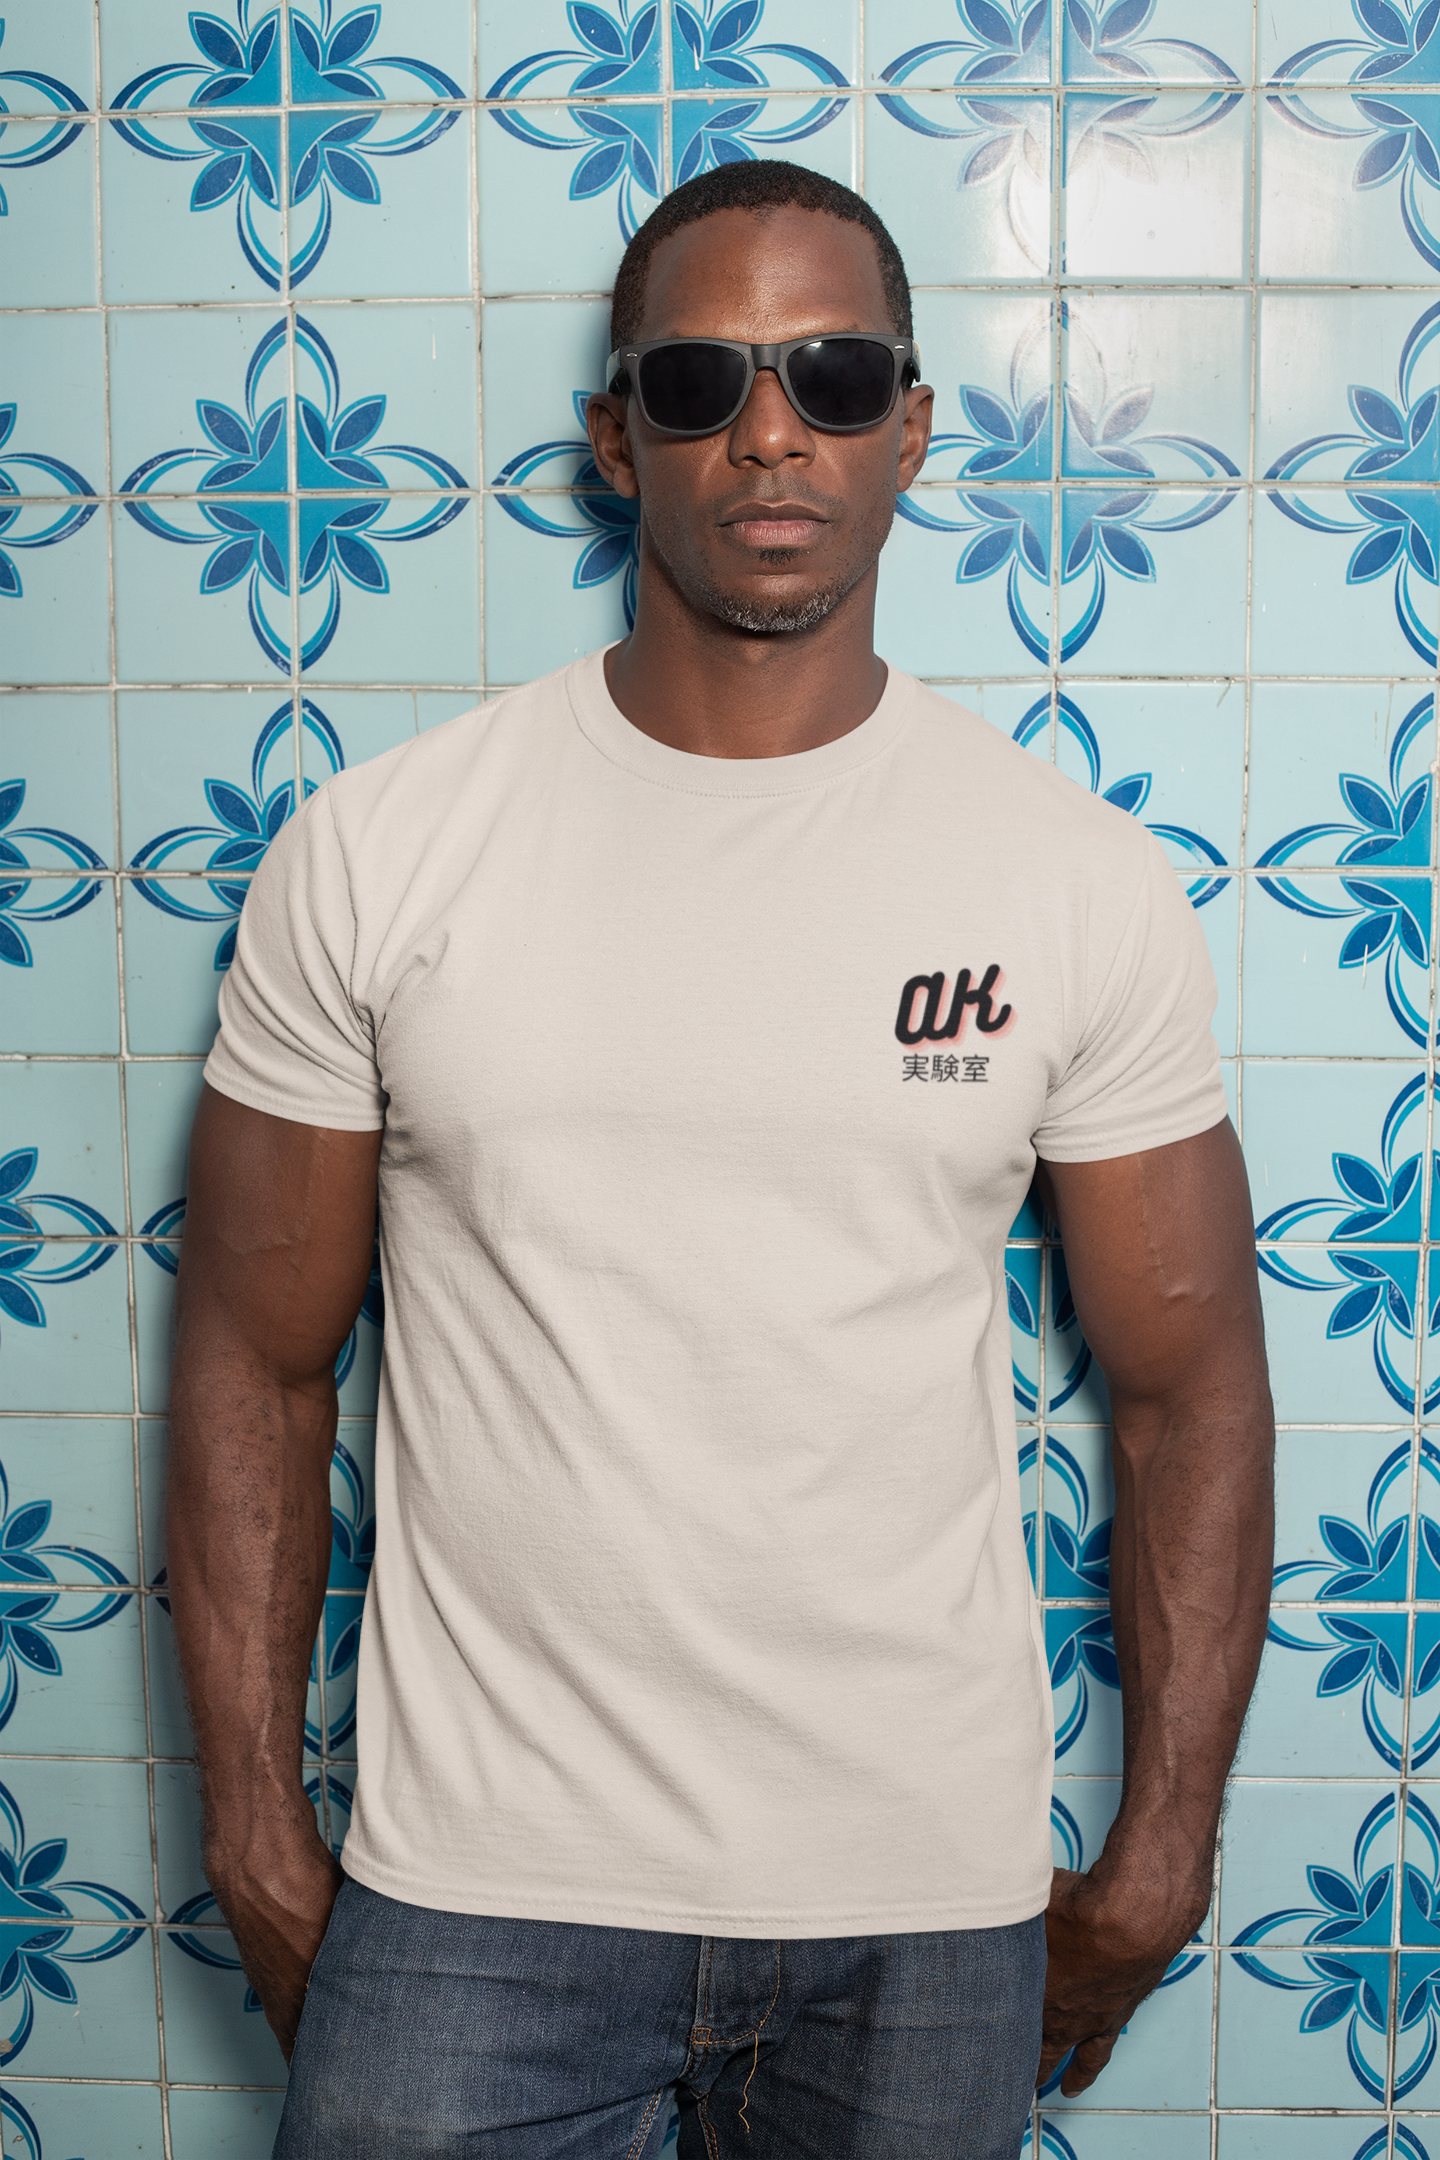 t shirt mockup of a man with sunglasses against a blue tiling 30449